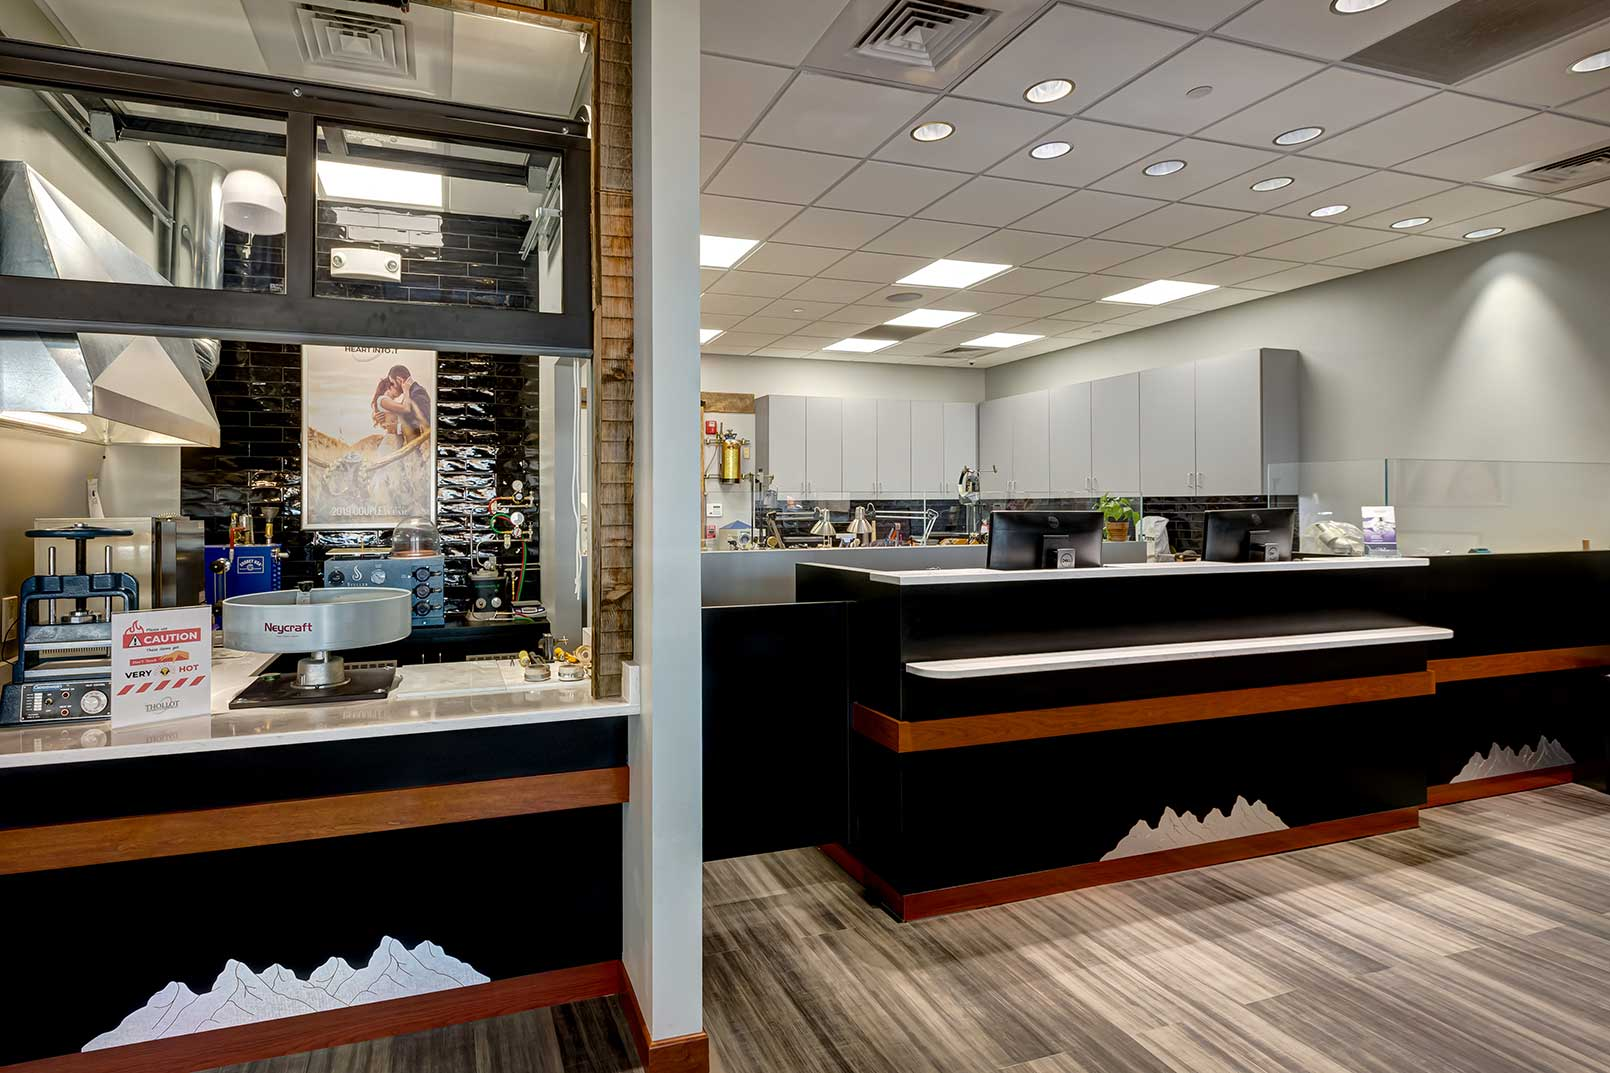 Thollot Jewelers, designed by Robert Dykman, invites customers to pour their own gold.